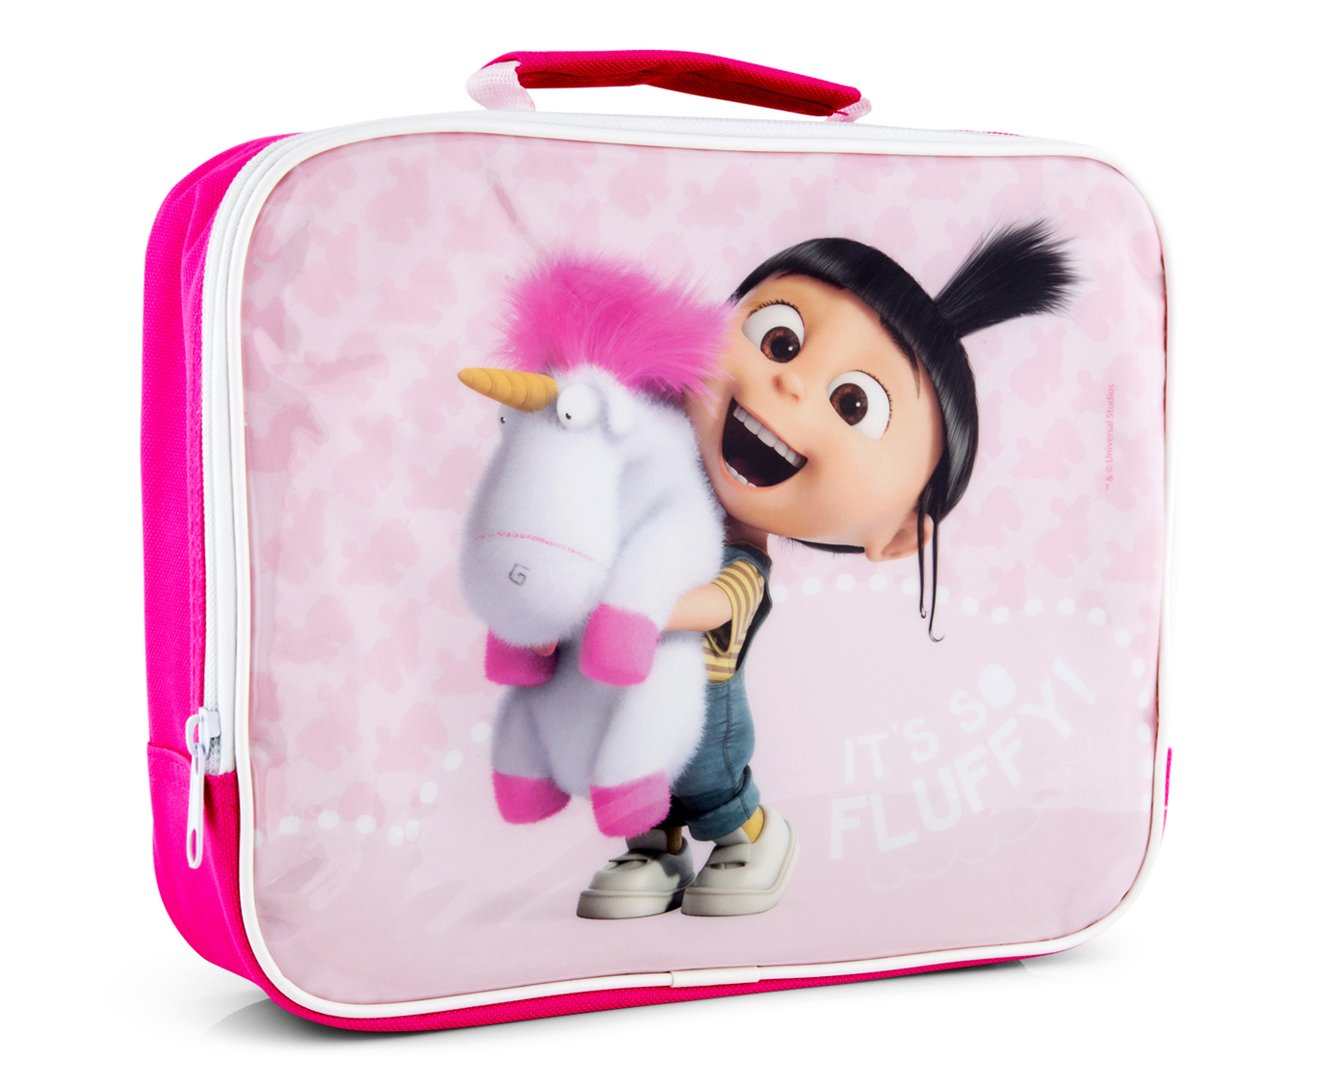 Boyz Toys ST459 Insulated Lunch Bag - Minions Fluffy Unicorn, Pink Boys Toys 07053